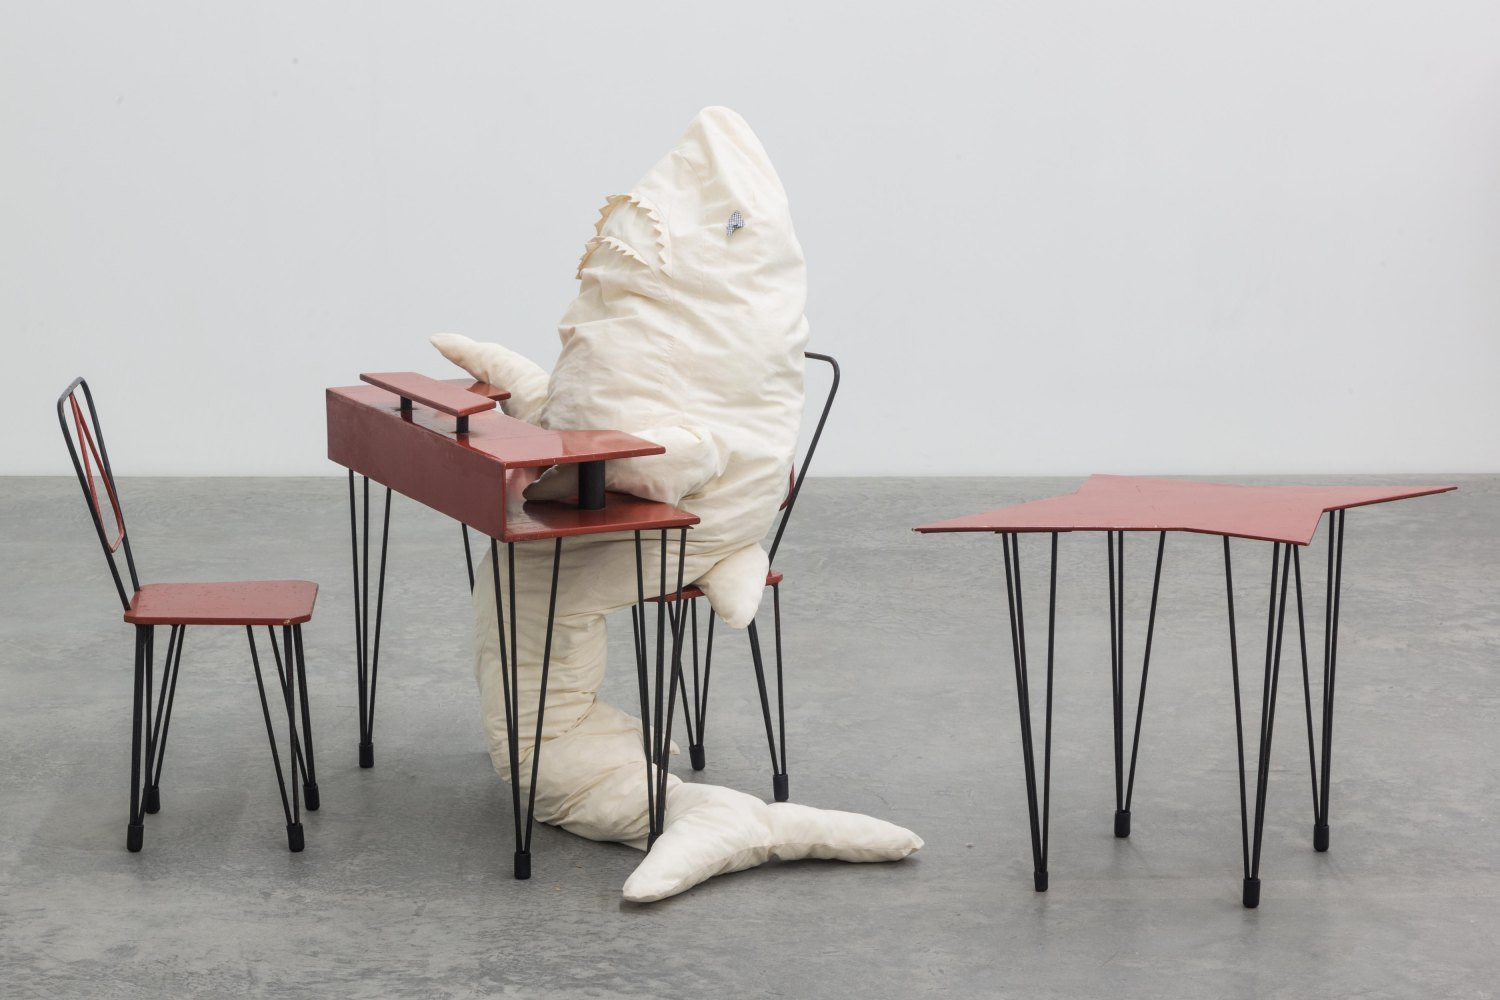 Cosima von Bonin  HAI AM TISCH 1, 2014    Iron, blockboard, lacquer, rubber, cotton, terry, foam material, polyfill, bulb with fitting, cable, galvanized steel,  150 × 50 cm (shark), 85 × 74 × 34 cm (table), 31 × 76 × 40 cm (chairs)